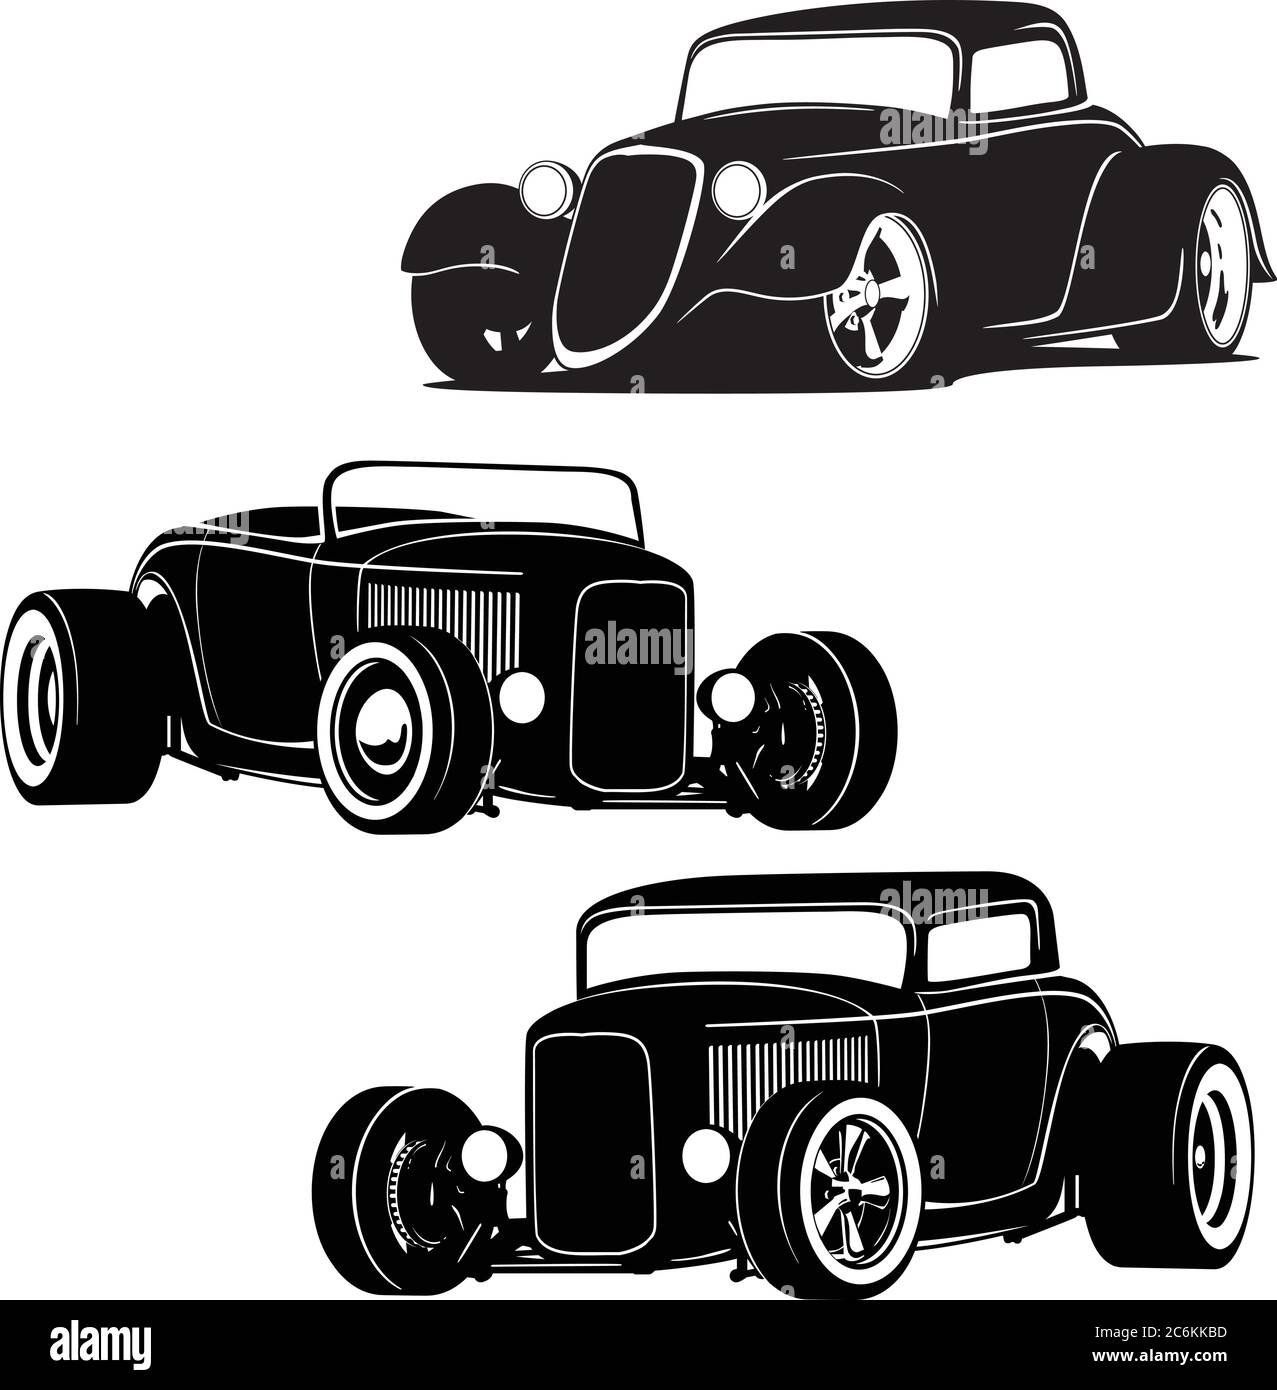 Hot Rod Muscle Cars Silhouette Set Isolated Vector Illustration Stock Vector Image Art Alamy